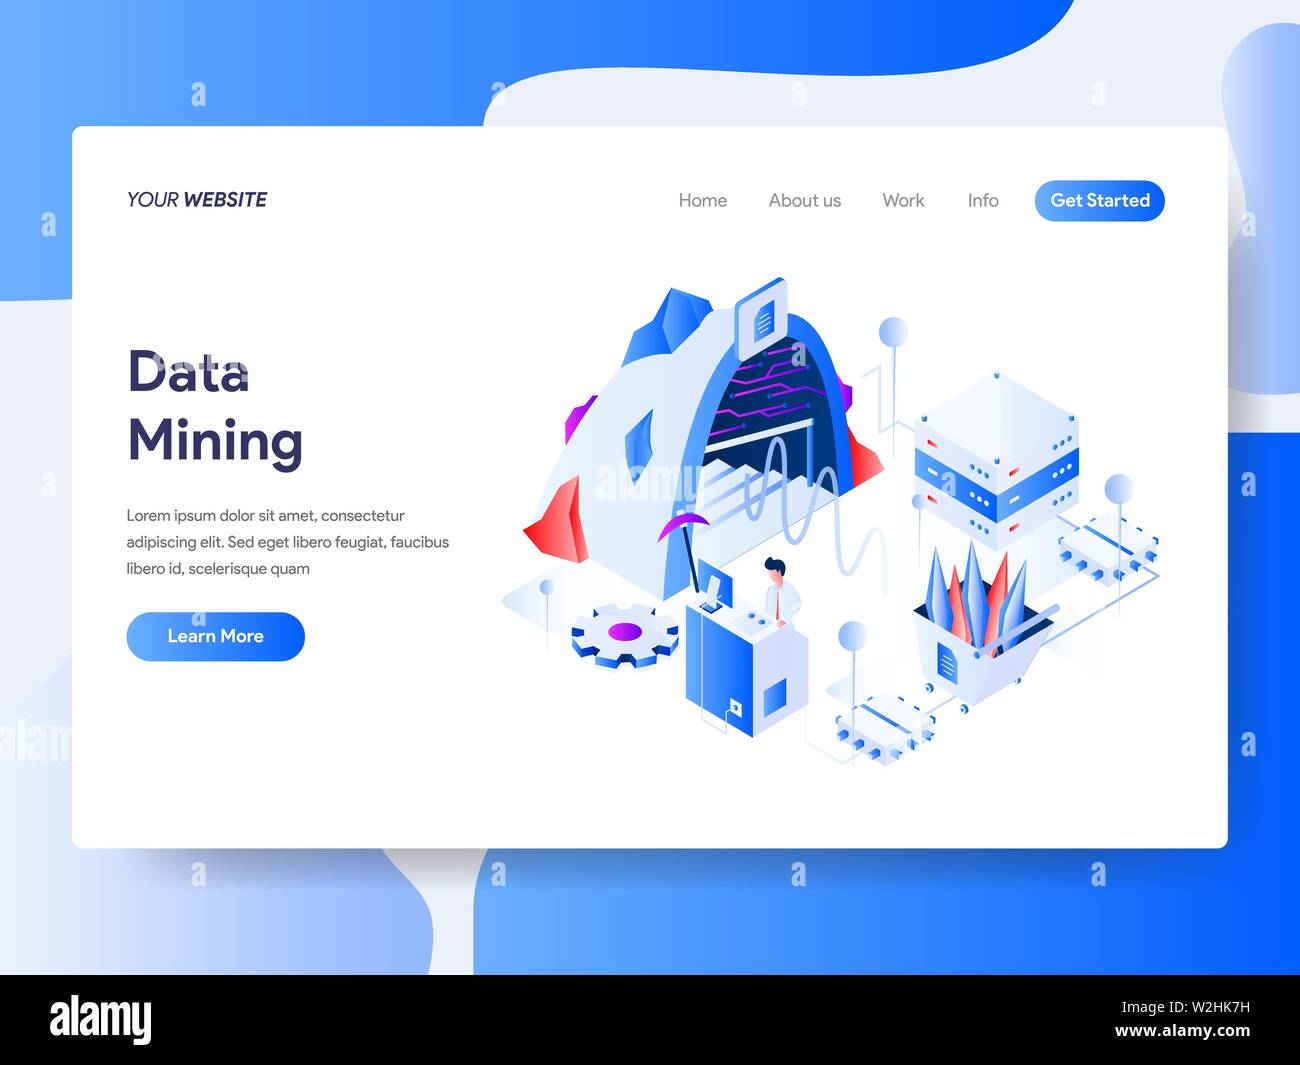 Landing page template of Data Mining Isometric Illustration Concept. Isometric flat design concept of web page design for website and mobile website - Stock Image